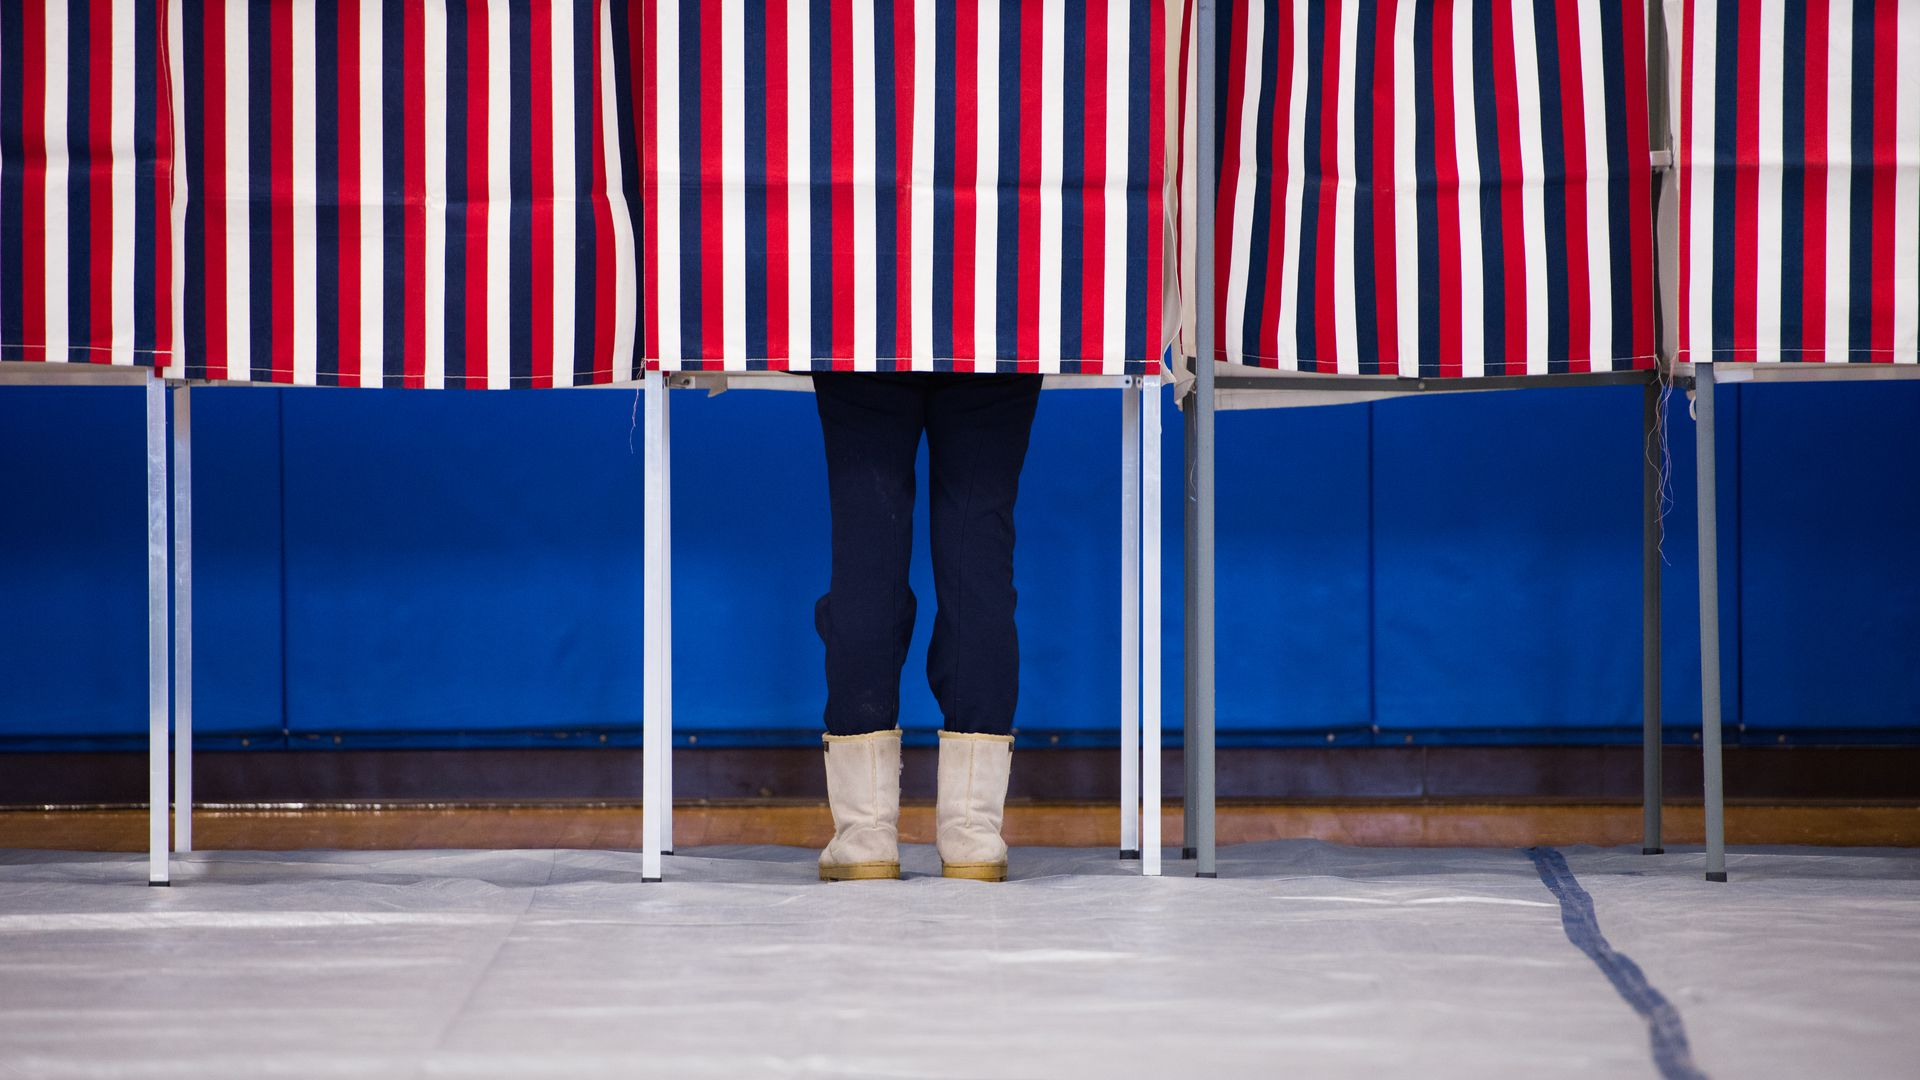 US Election Day: No Malicious Cyber Activity So Far